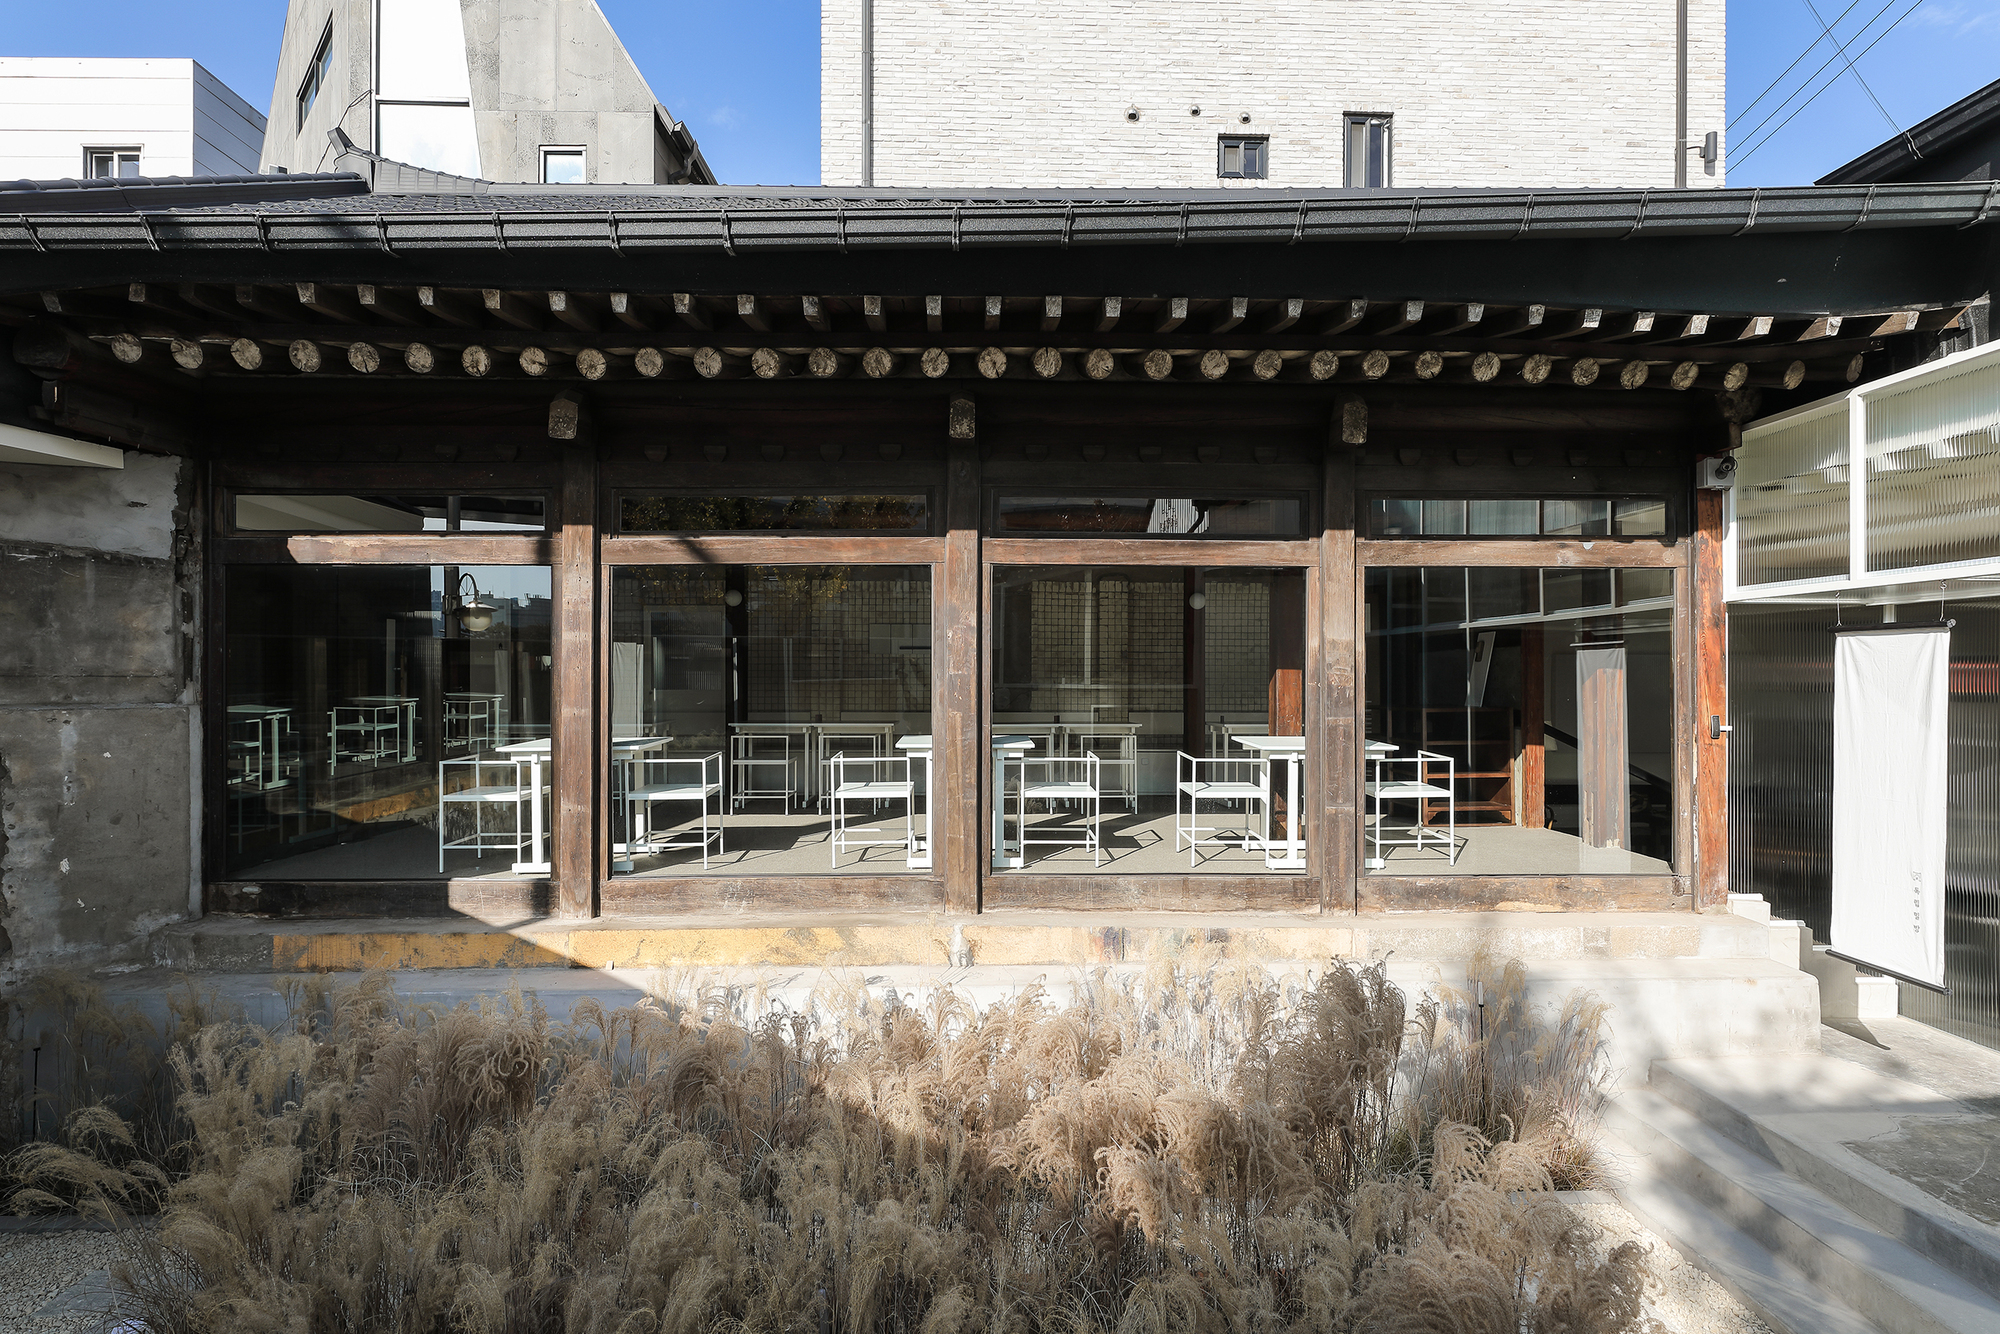 Restaurant Architecture And Design In South Korea Archdaily